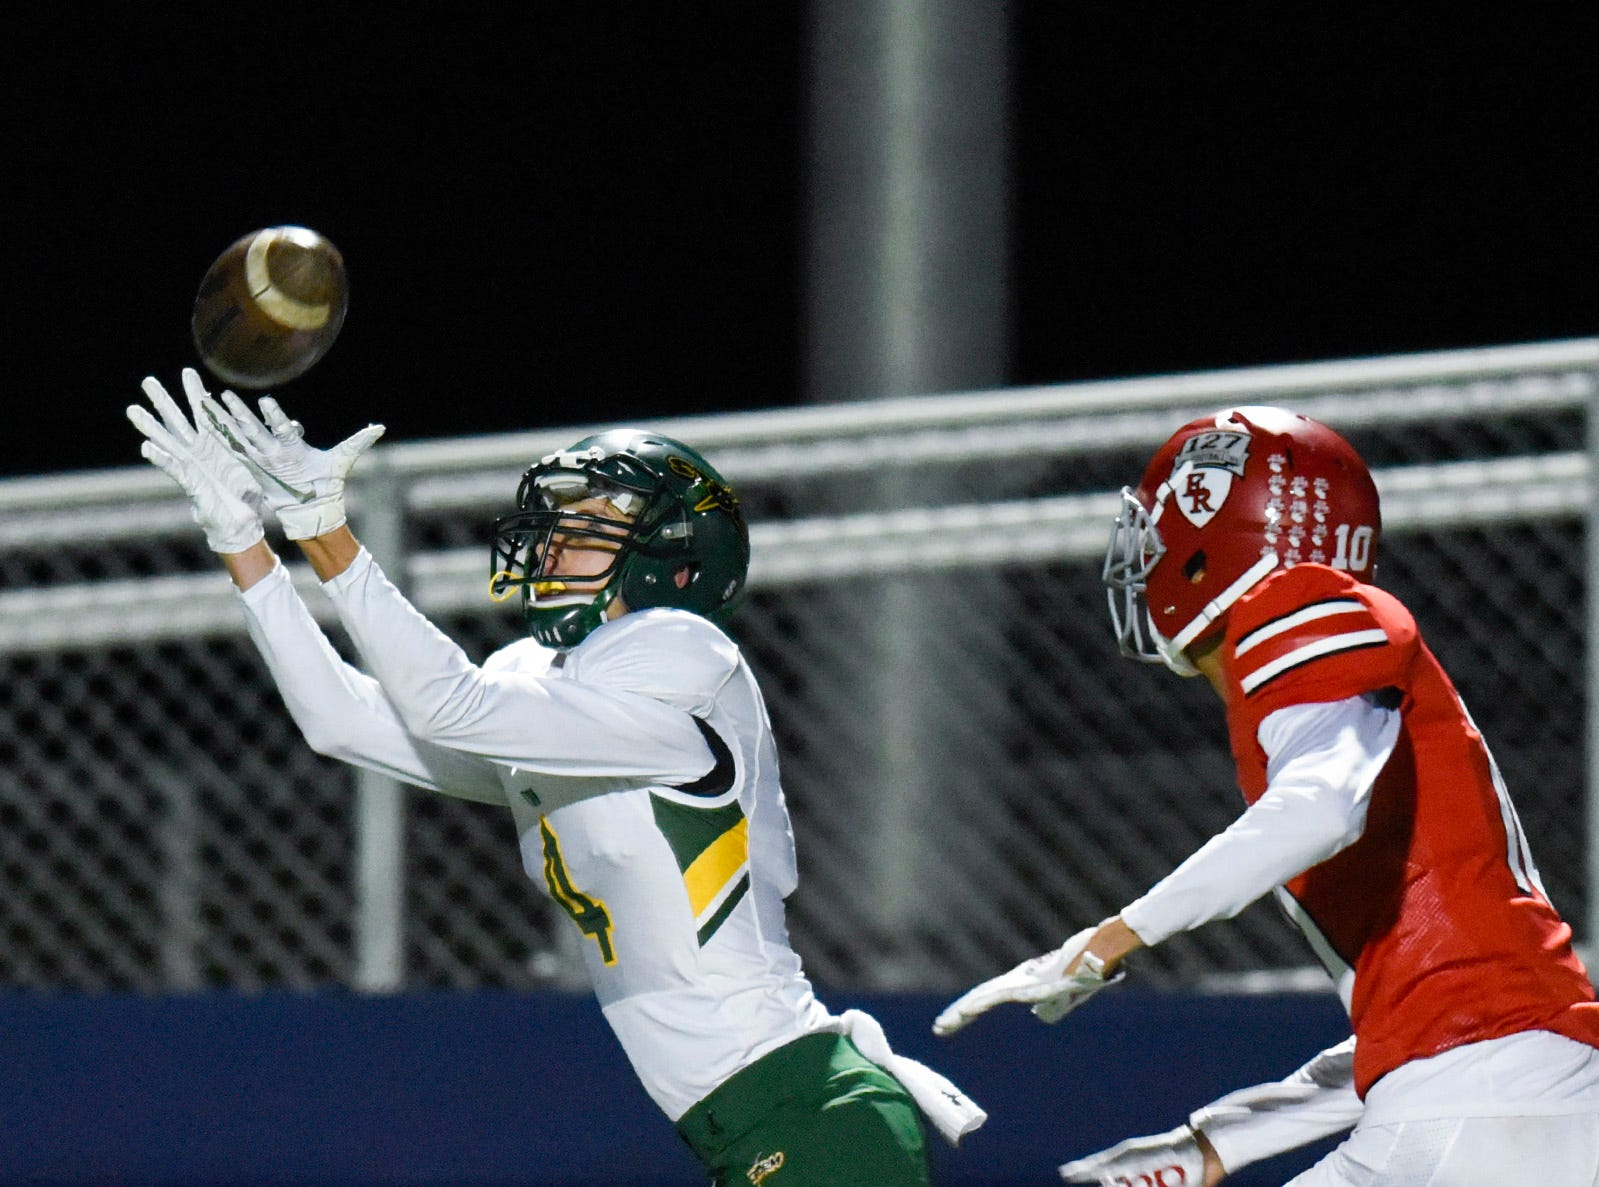 Sauk Rapids wide receiver Kobe Lee tries to grab a pass against Elk River during the first half Friday, Nov. 2, in the Section 6-5A championship at Buffalo High School.